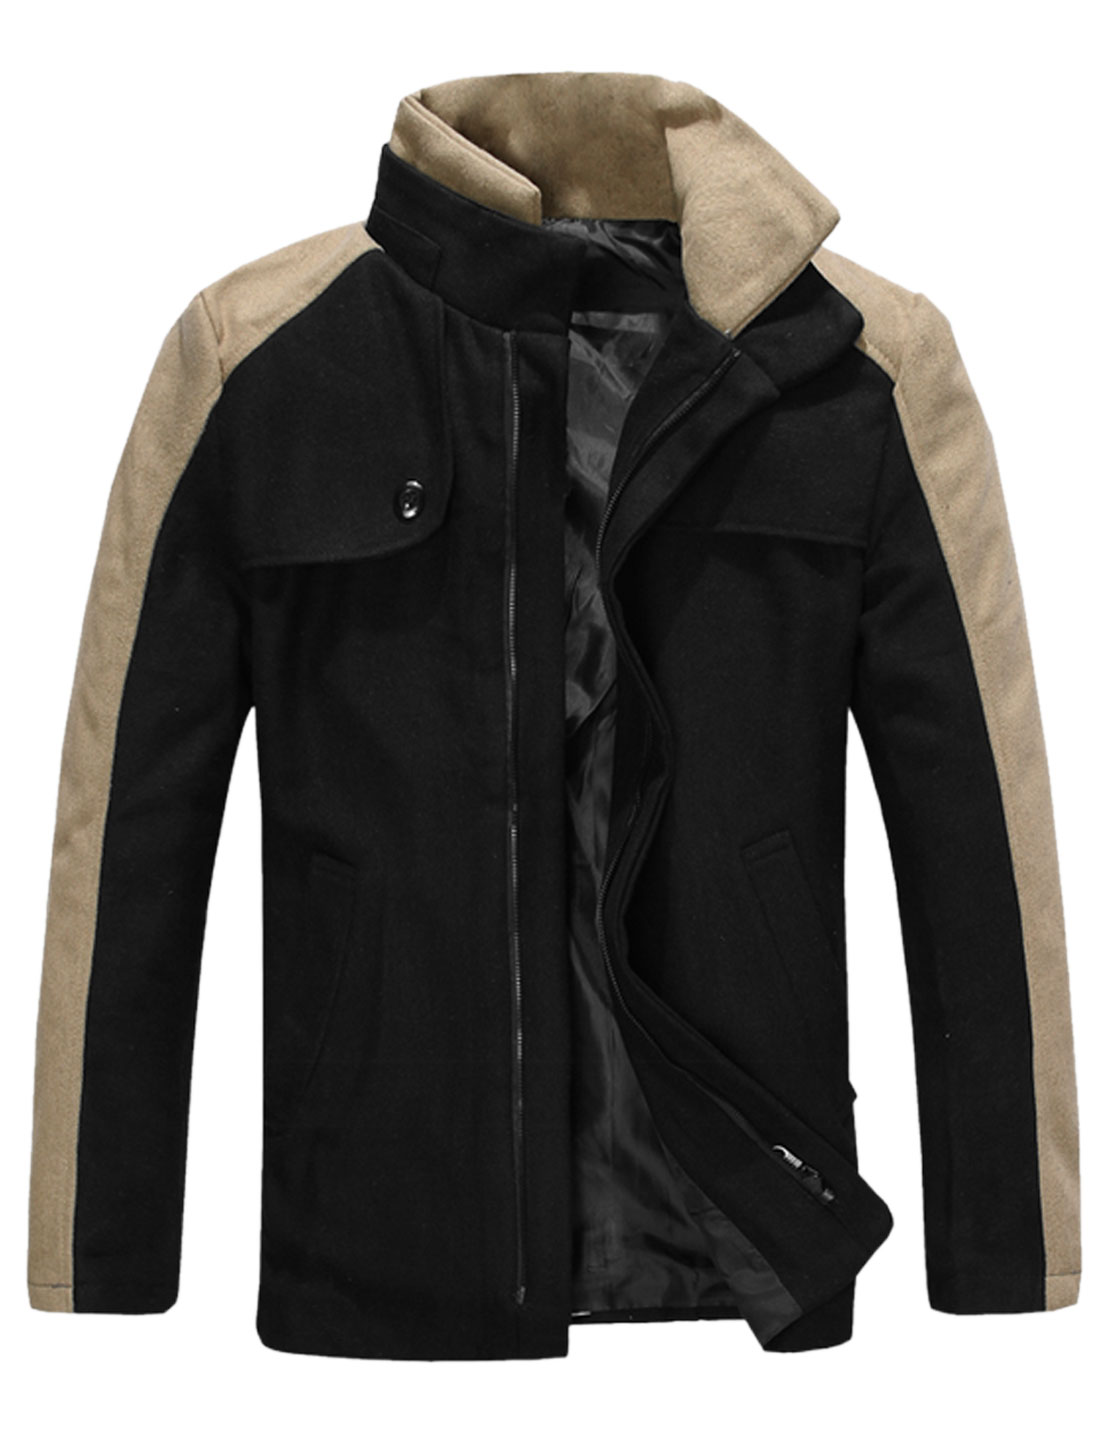 Men Layer Convertible Collar Contrast Long Sleeves Worsted Jacket Black M